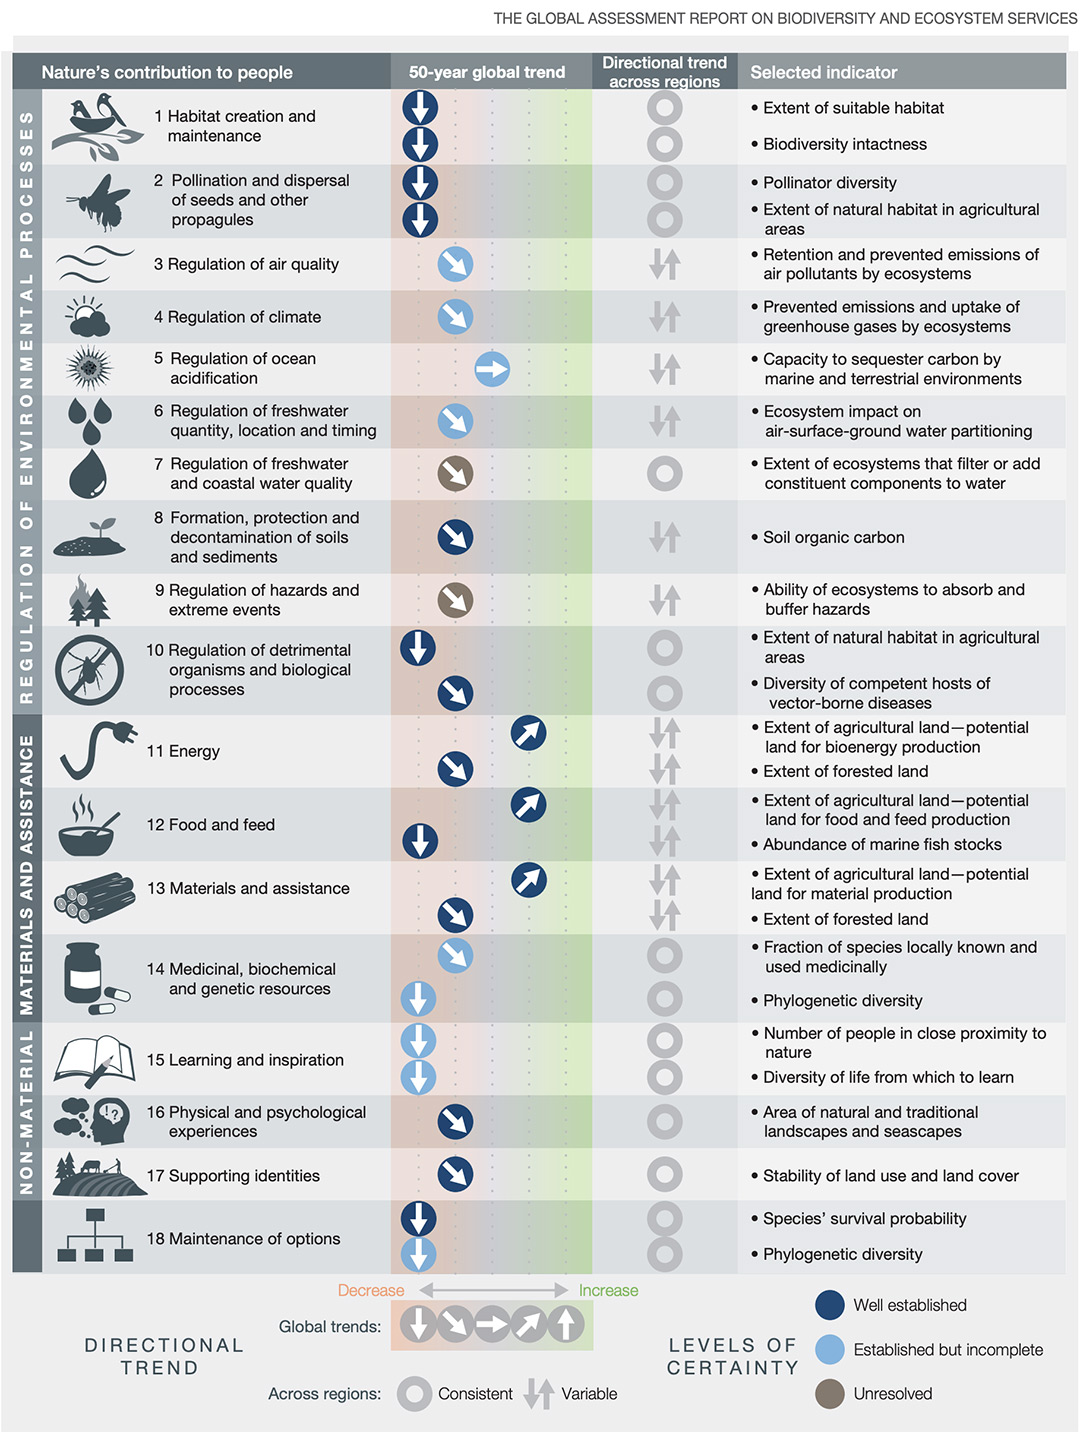 Global trends in the capacity of nature to sustain contributions to good quality of life from 1970 to the present, which show a decline for 14 of the 18 categories of nature's contributions to people analyzed. THE GLOBAL ASSESSMENT REPORT ON BIODIVERSITY AND ECOSYSTEM SERVICES